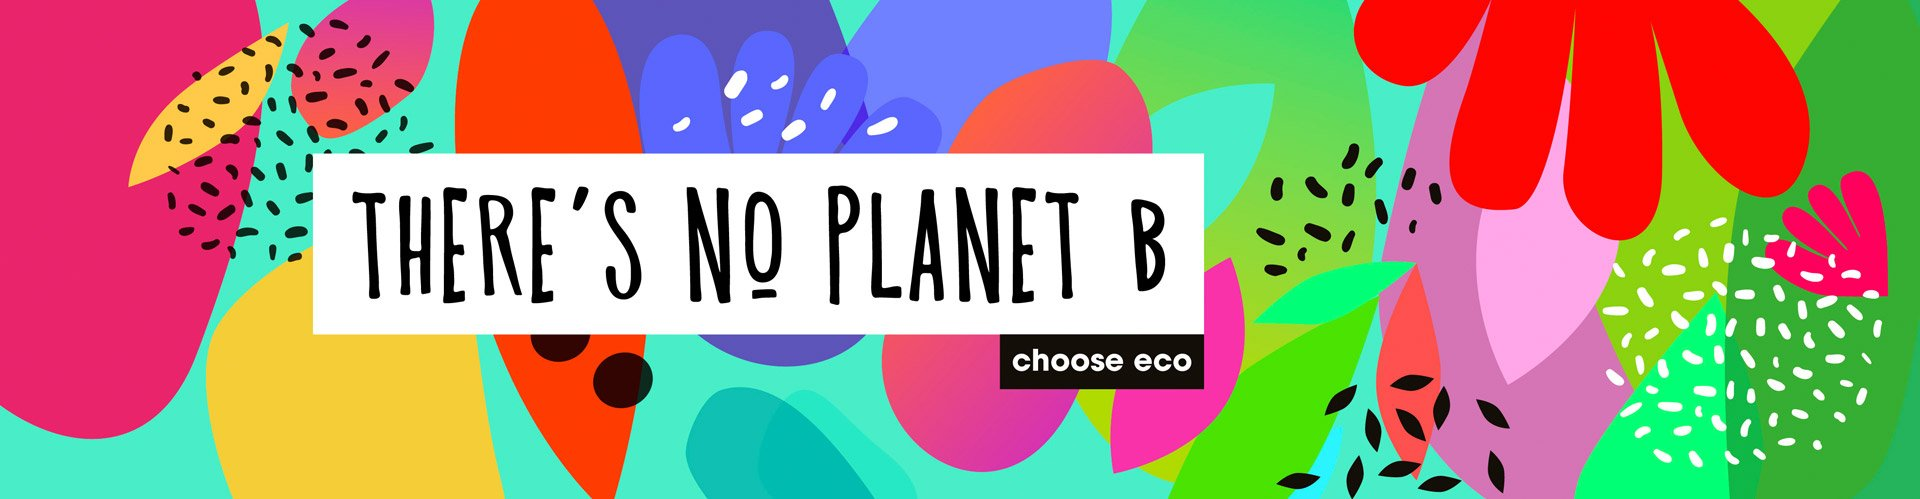 Choose eco